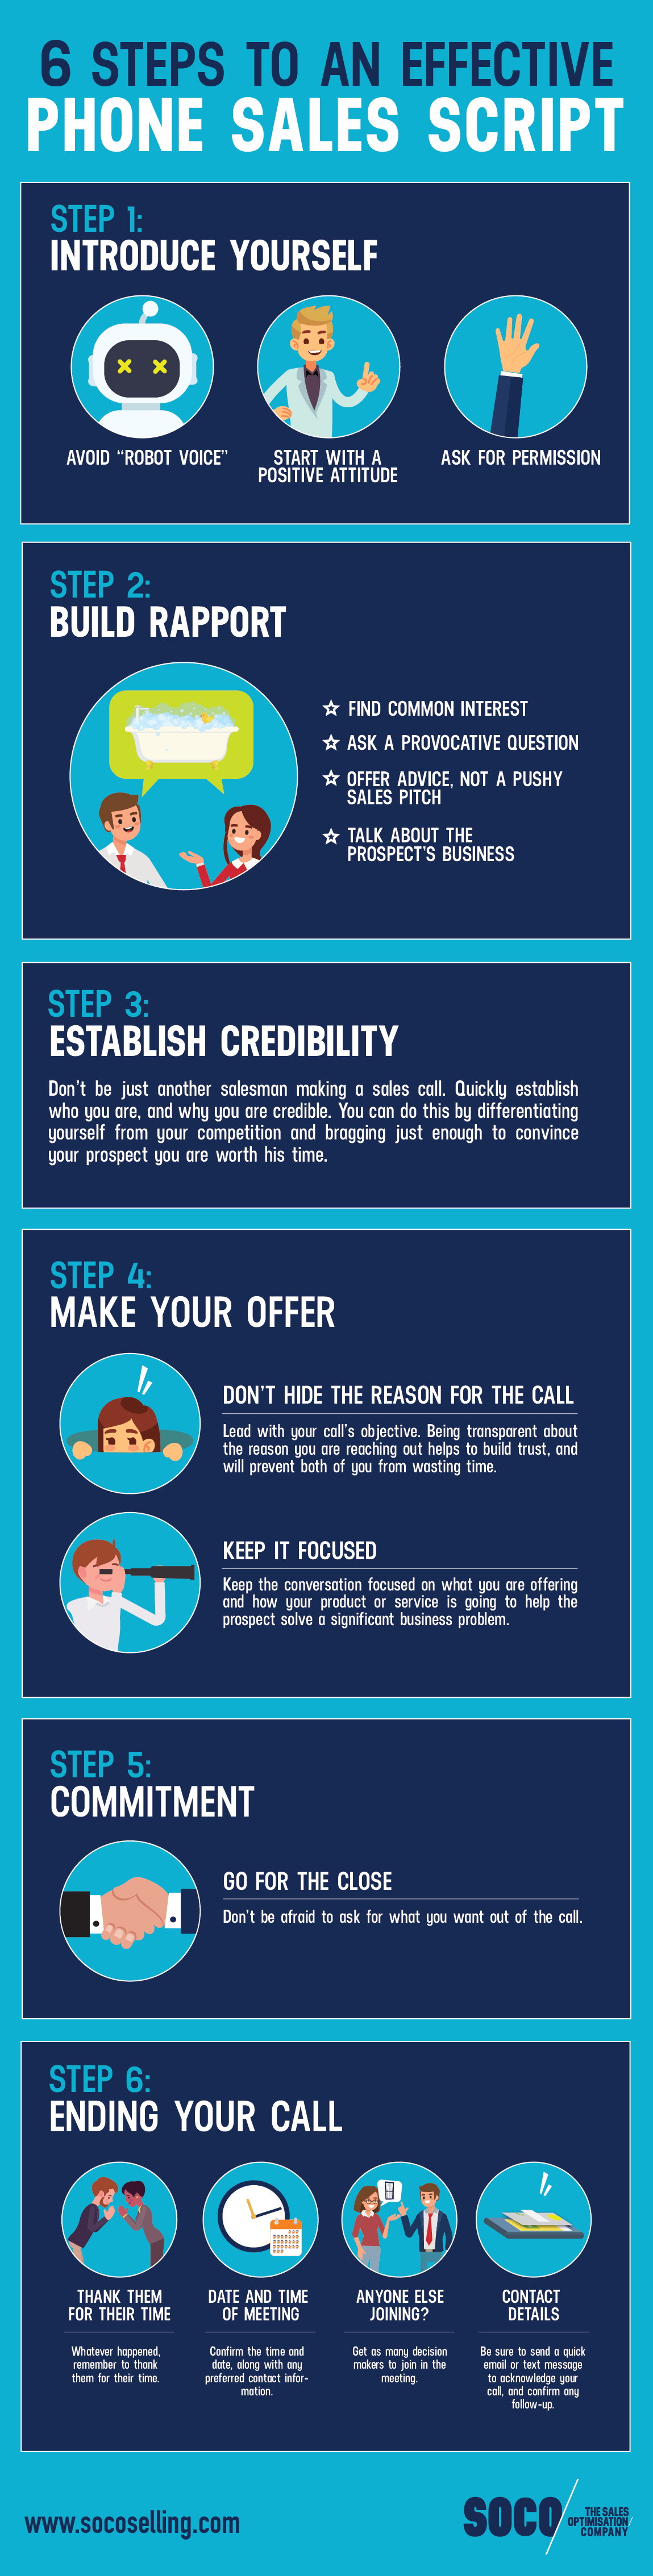 6 Steps To An Effective Phone Sales Script